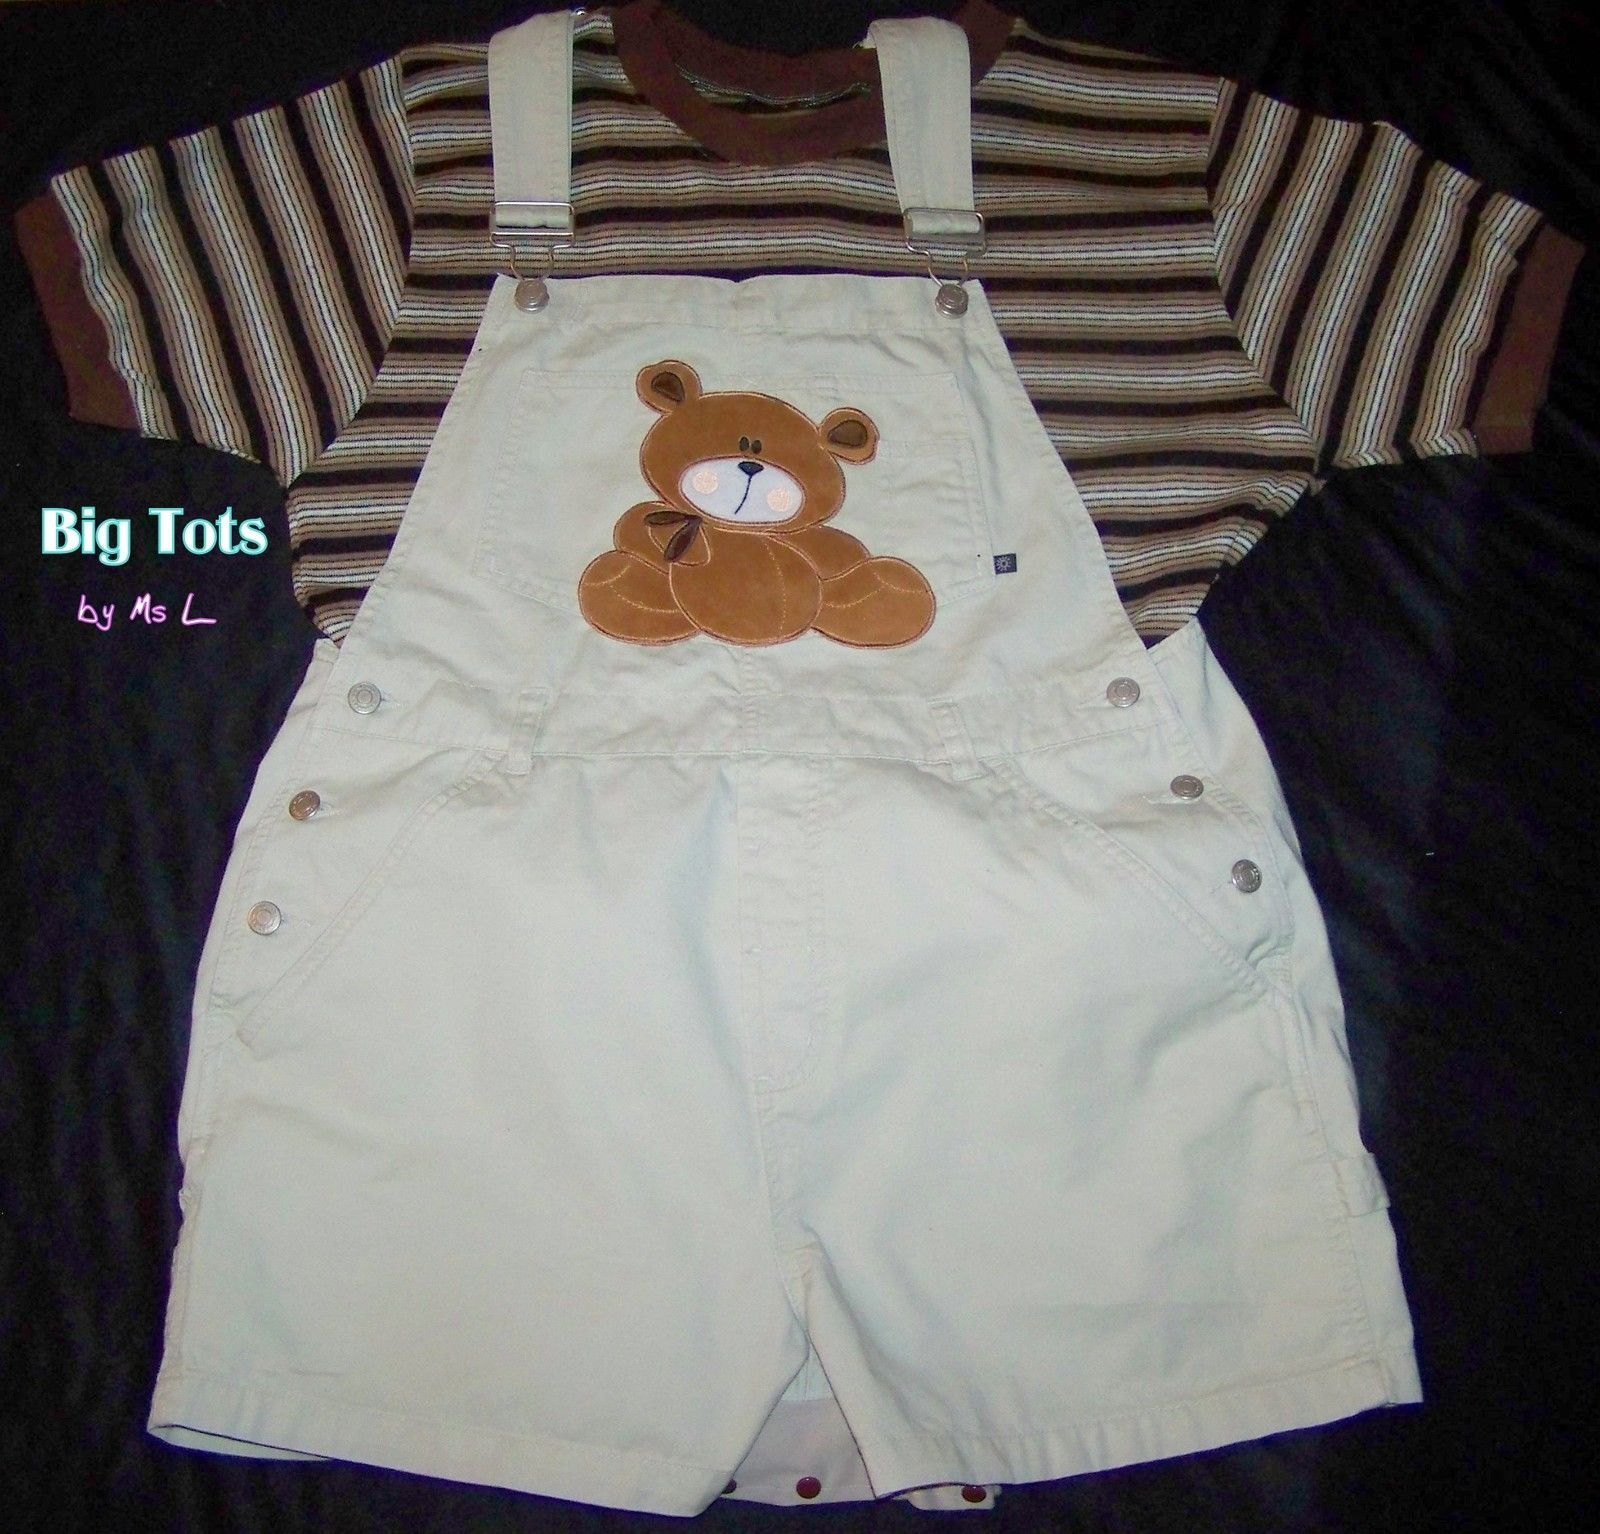 "Adult Baby Teddy Bear Shortalls Onesuit Set 46"" Hip MSL Big Tots 